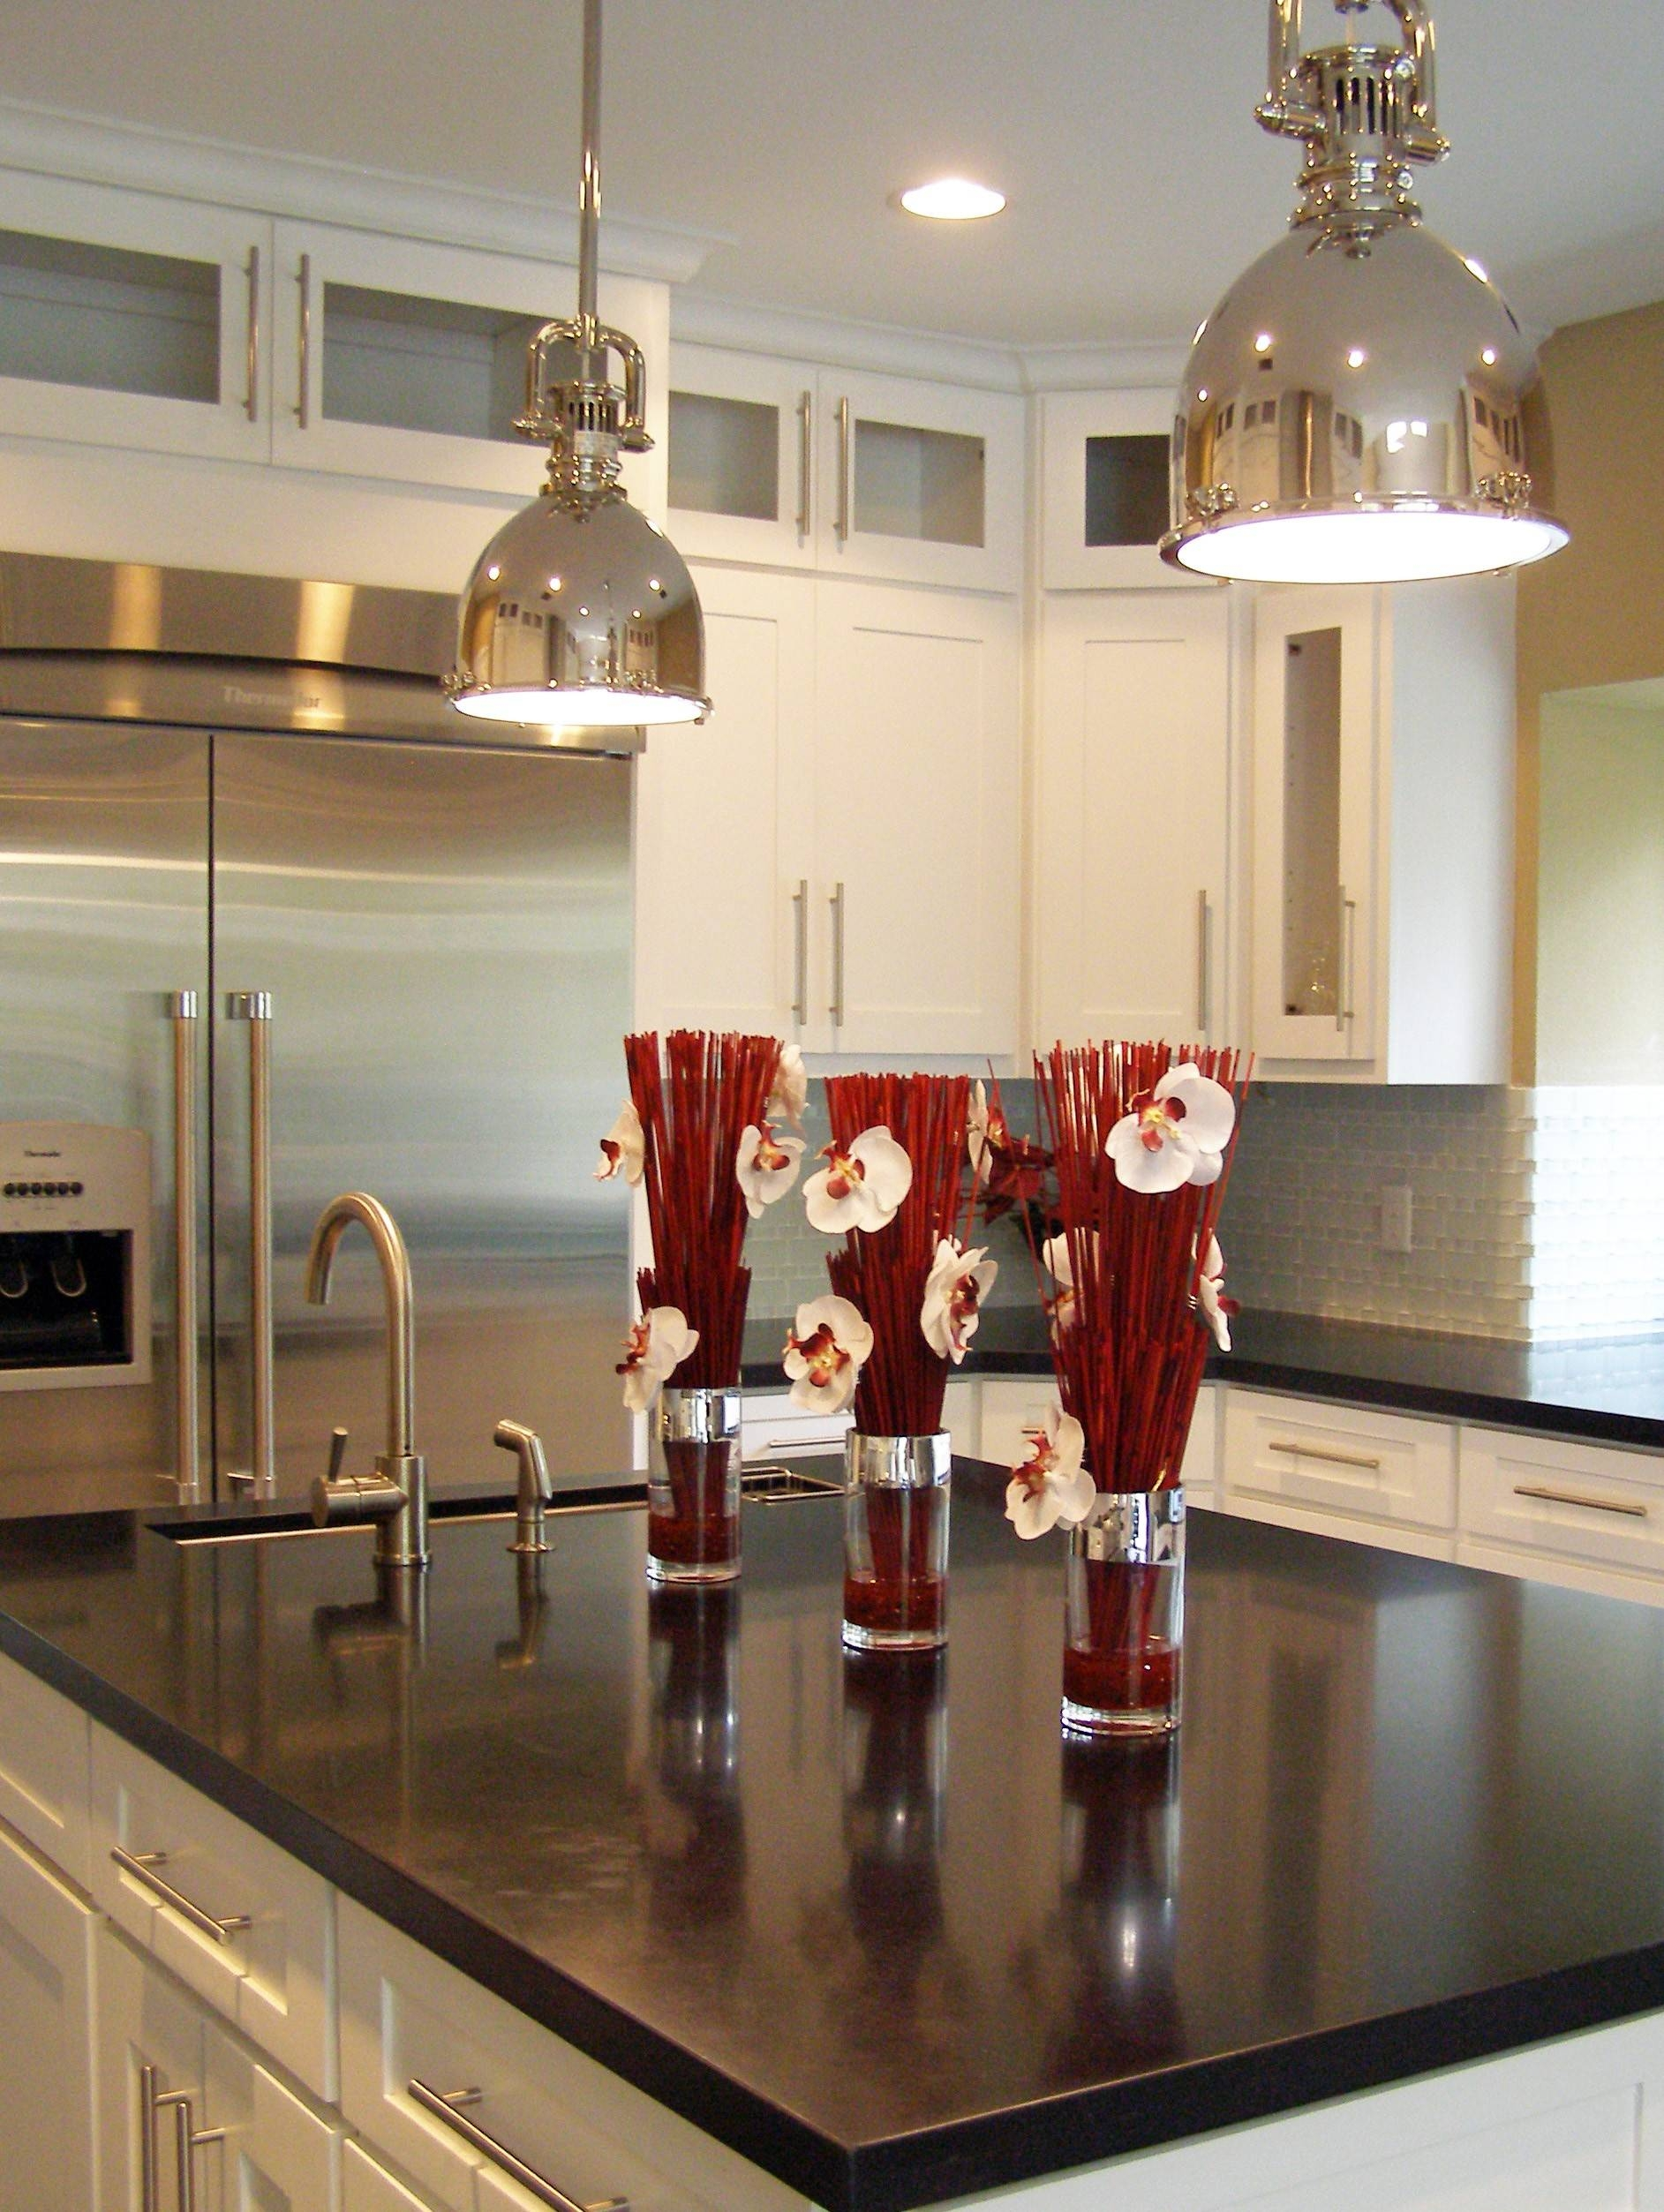 Furniture Appealing Pendant Lights For Kitchen Islands Wooden with regard to Stainless Steel Kitchen Pendant Lighting (Image 2 of 15)